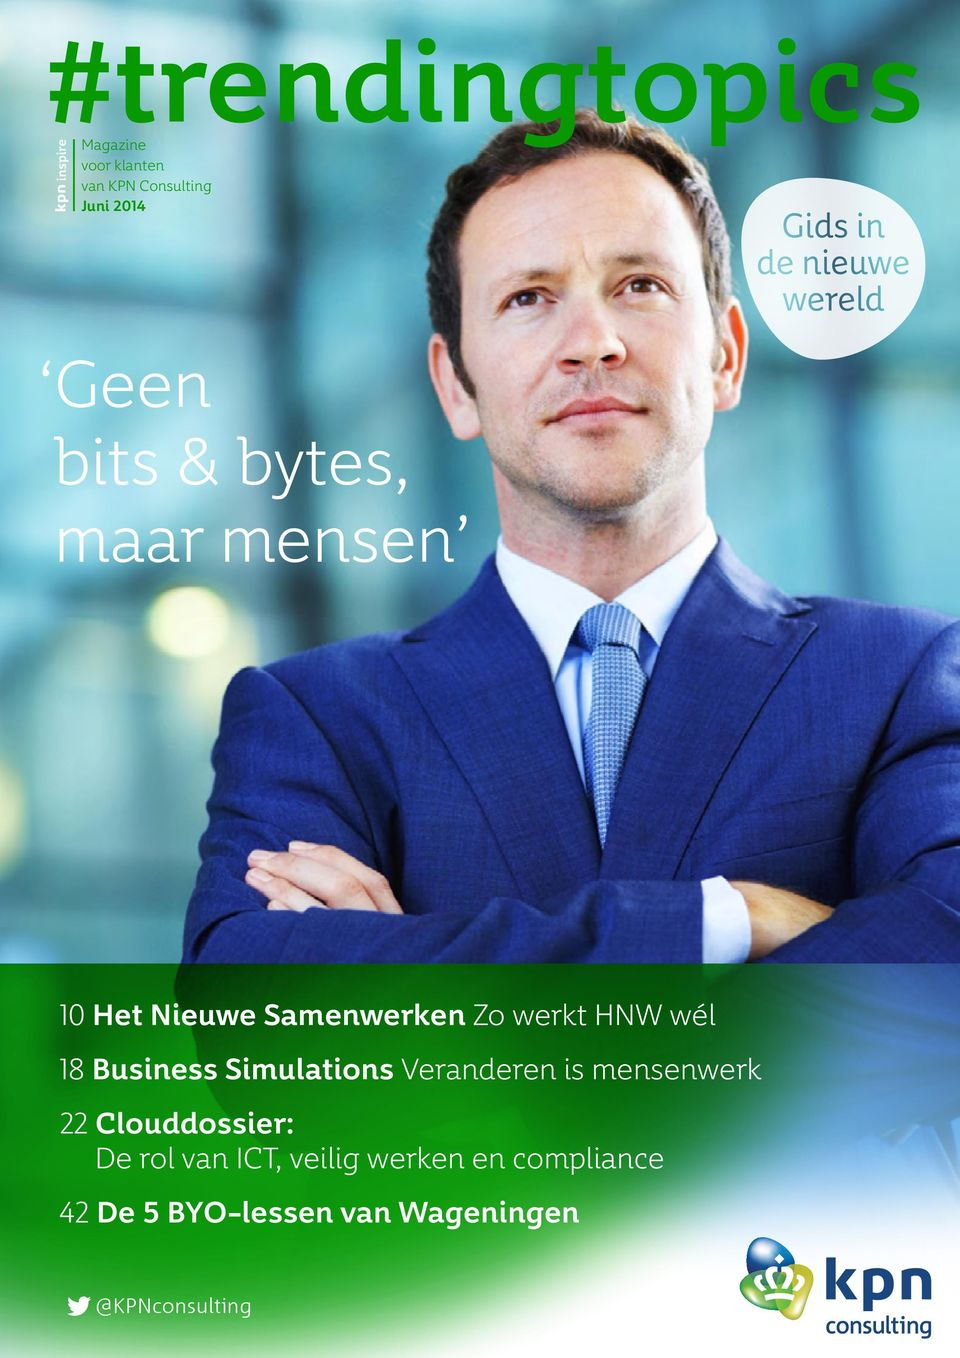 Business Simulations Veranderen is mensenwerk 22 Clouddossier: De rol van